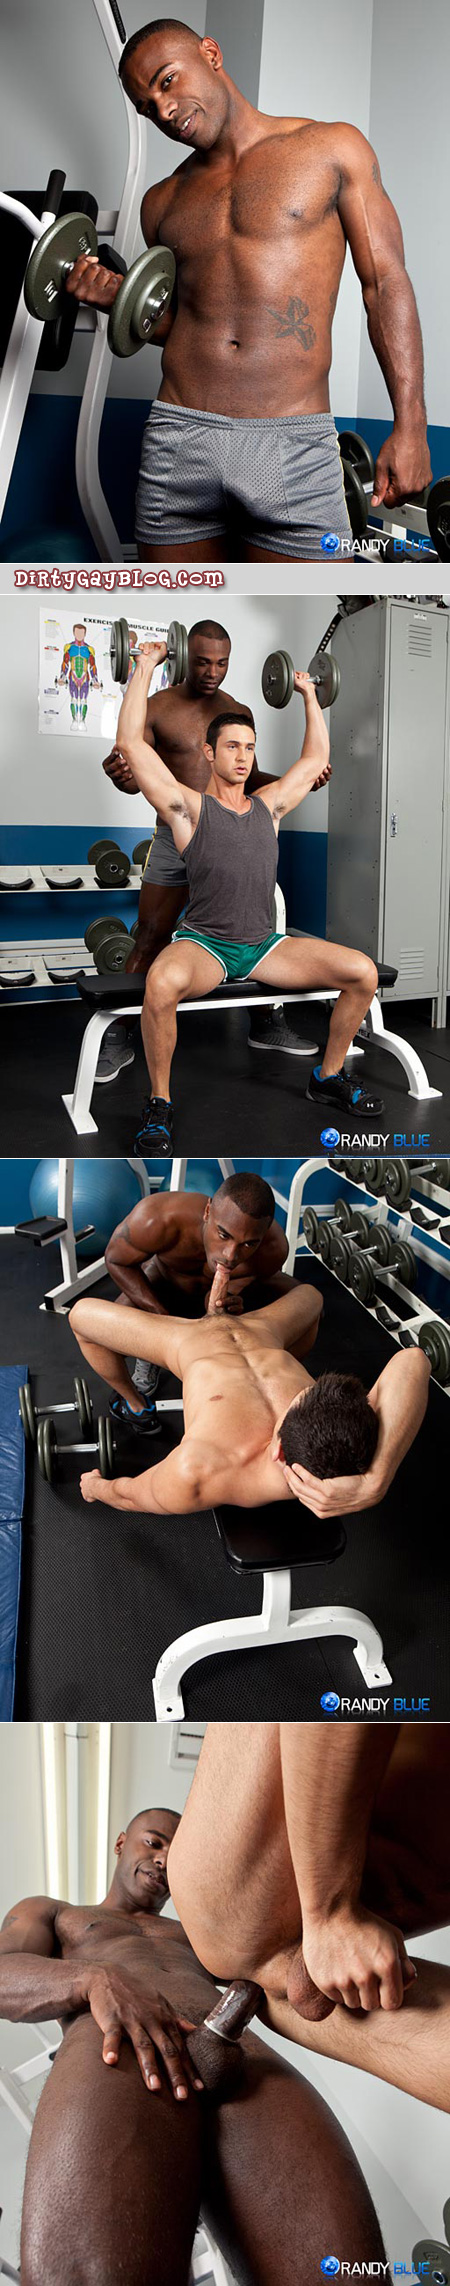 Black male personal trainer with a hard-on in his mesh shorts fucks the guys he's training in the gym after his workout.